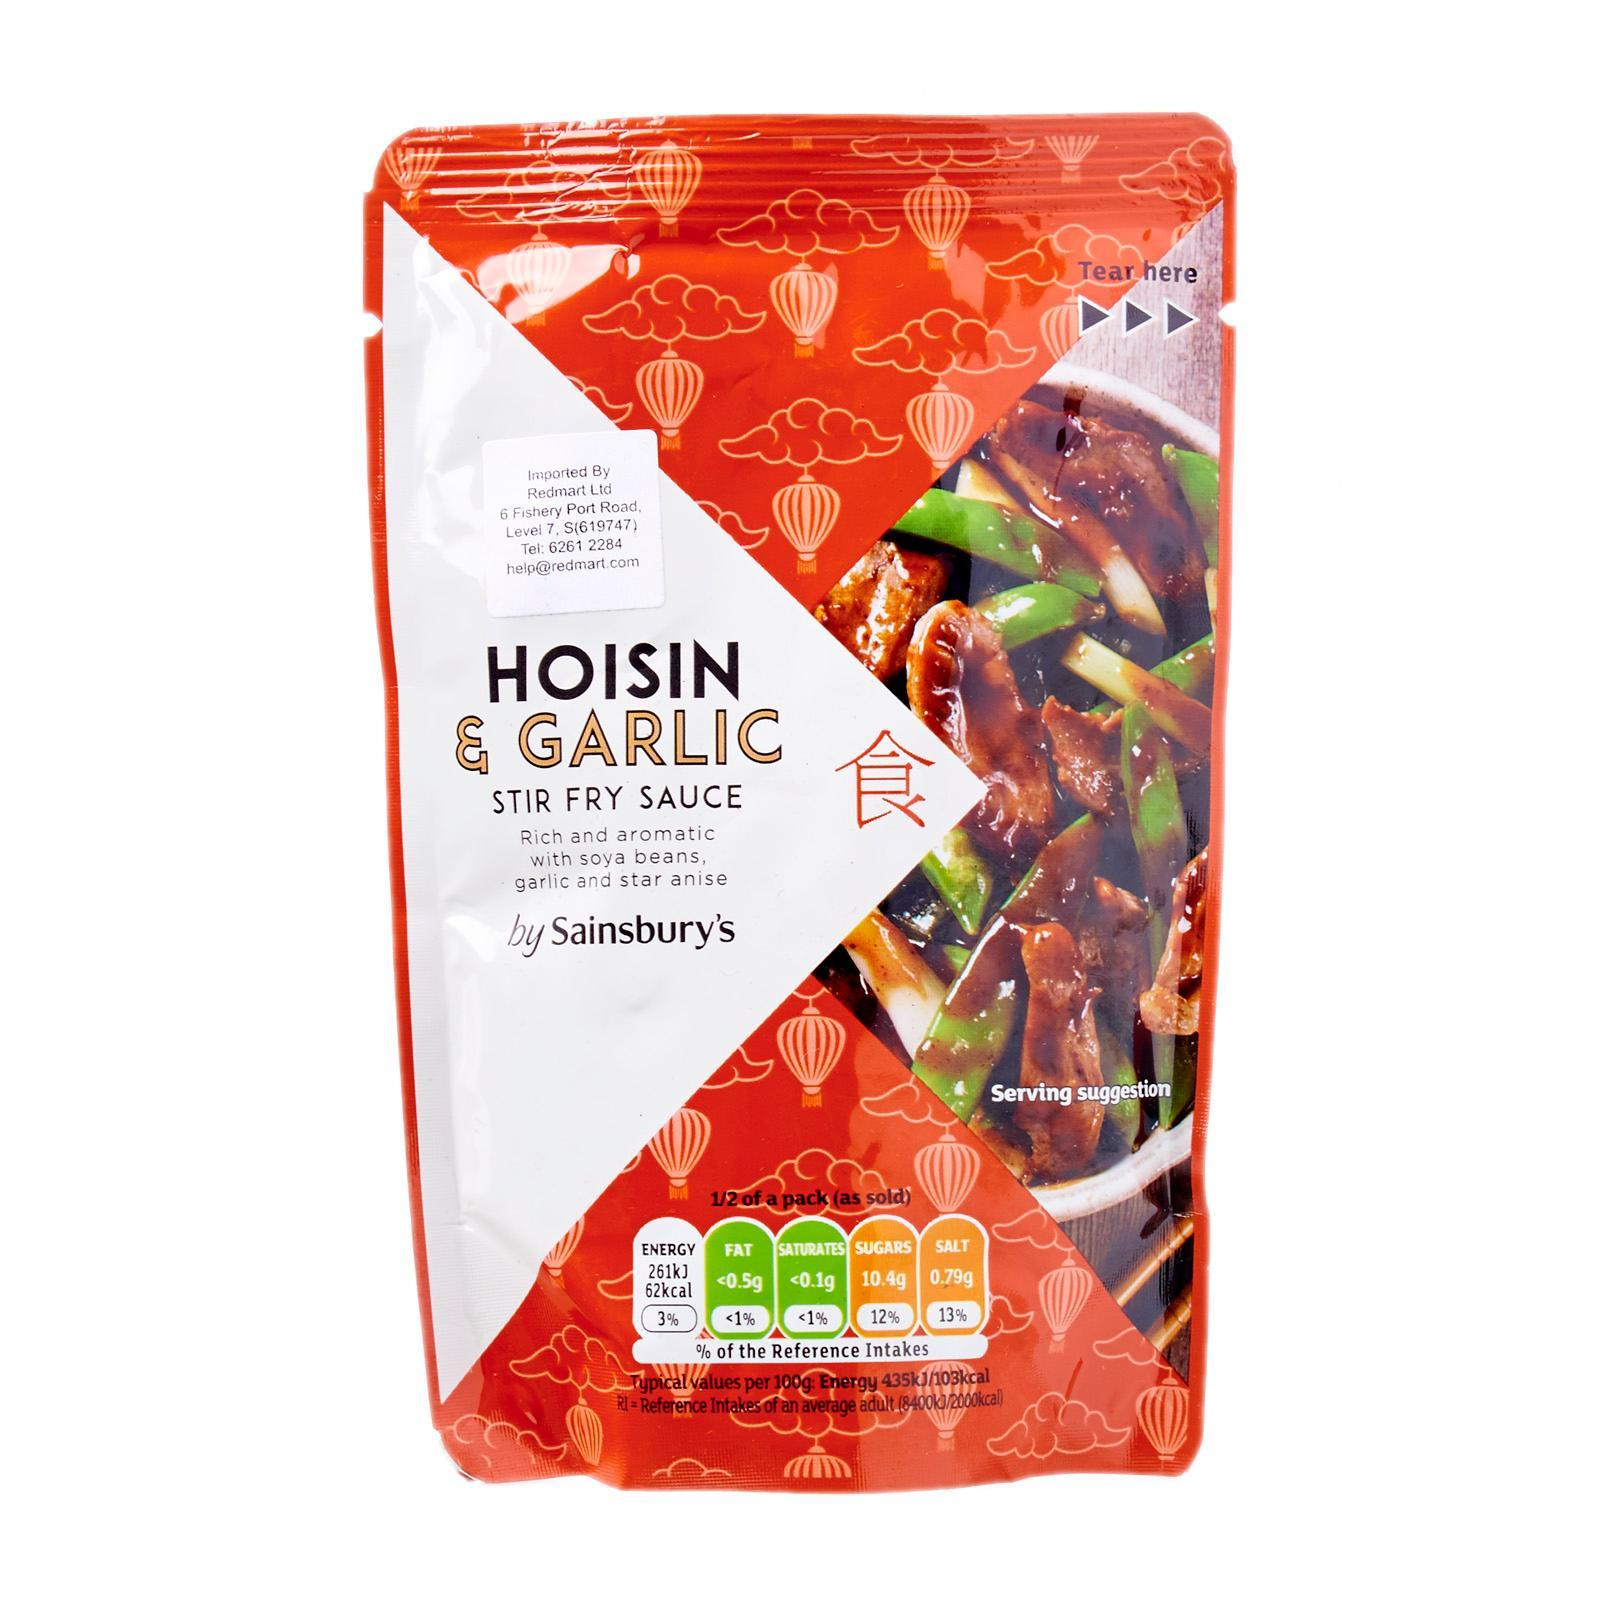 Sainsbury's Hoisin And Garlic Stir Fry Sauce